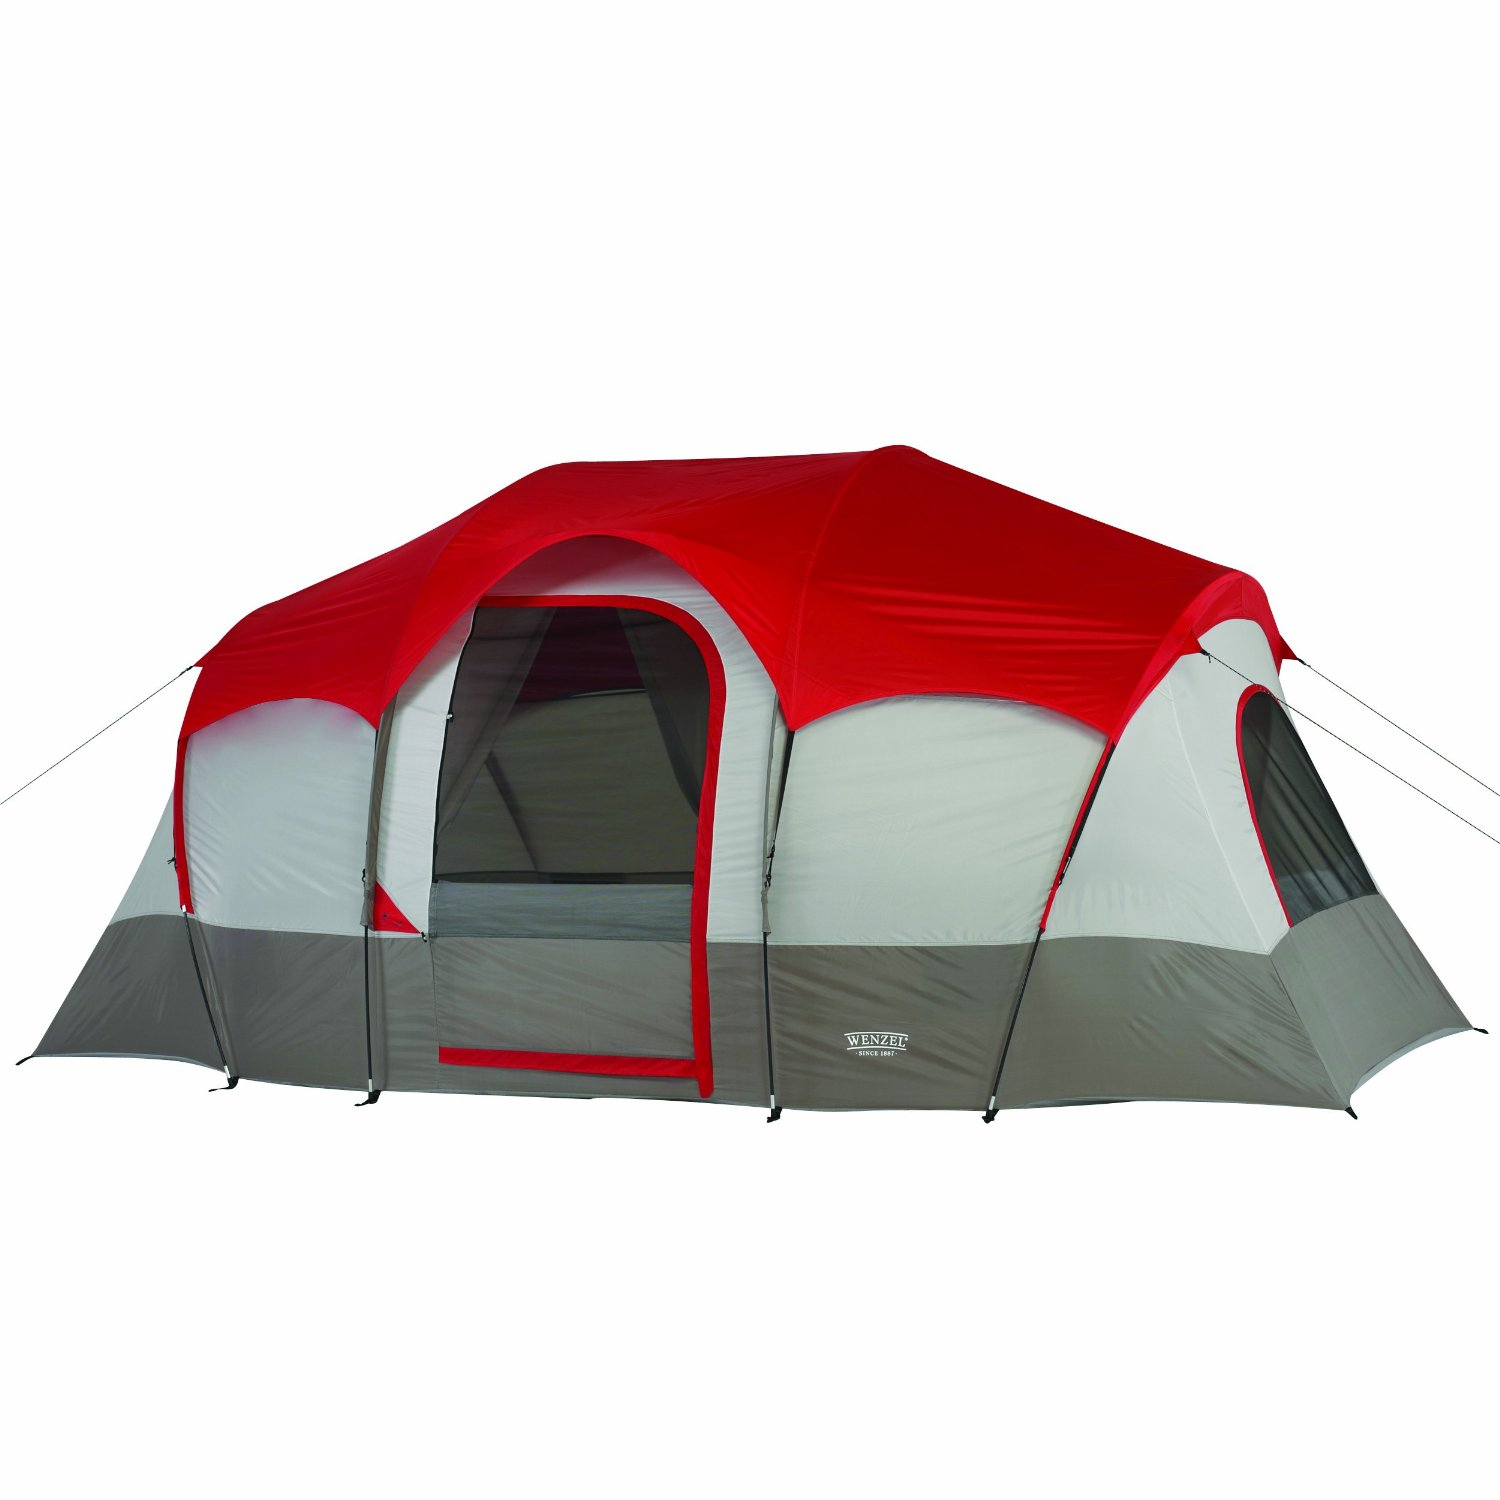 Wenzel Blue Ridge 7 Person Tent  sc 1 st  Koiyaki Guiding School & Best Family Tent For Camping in 2018 - KOIYAKI.COM